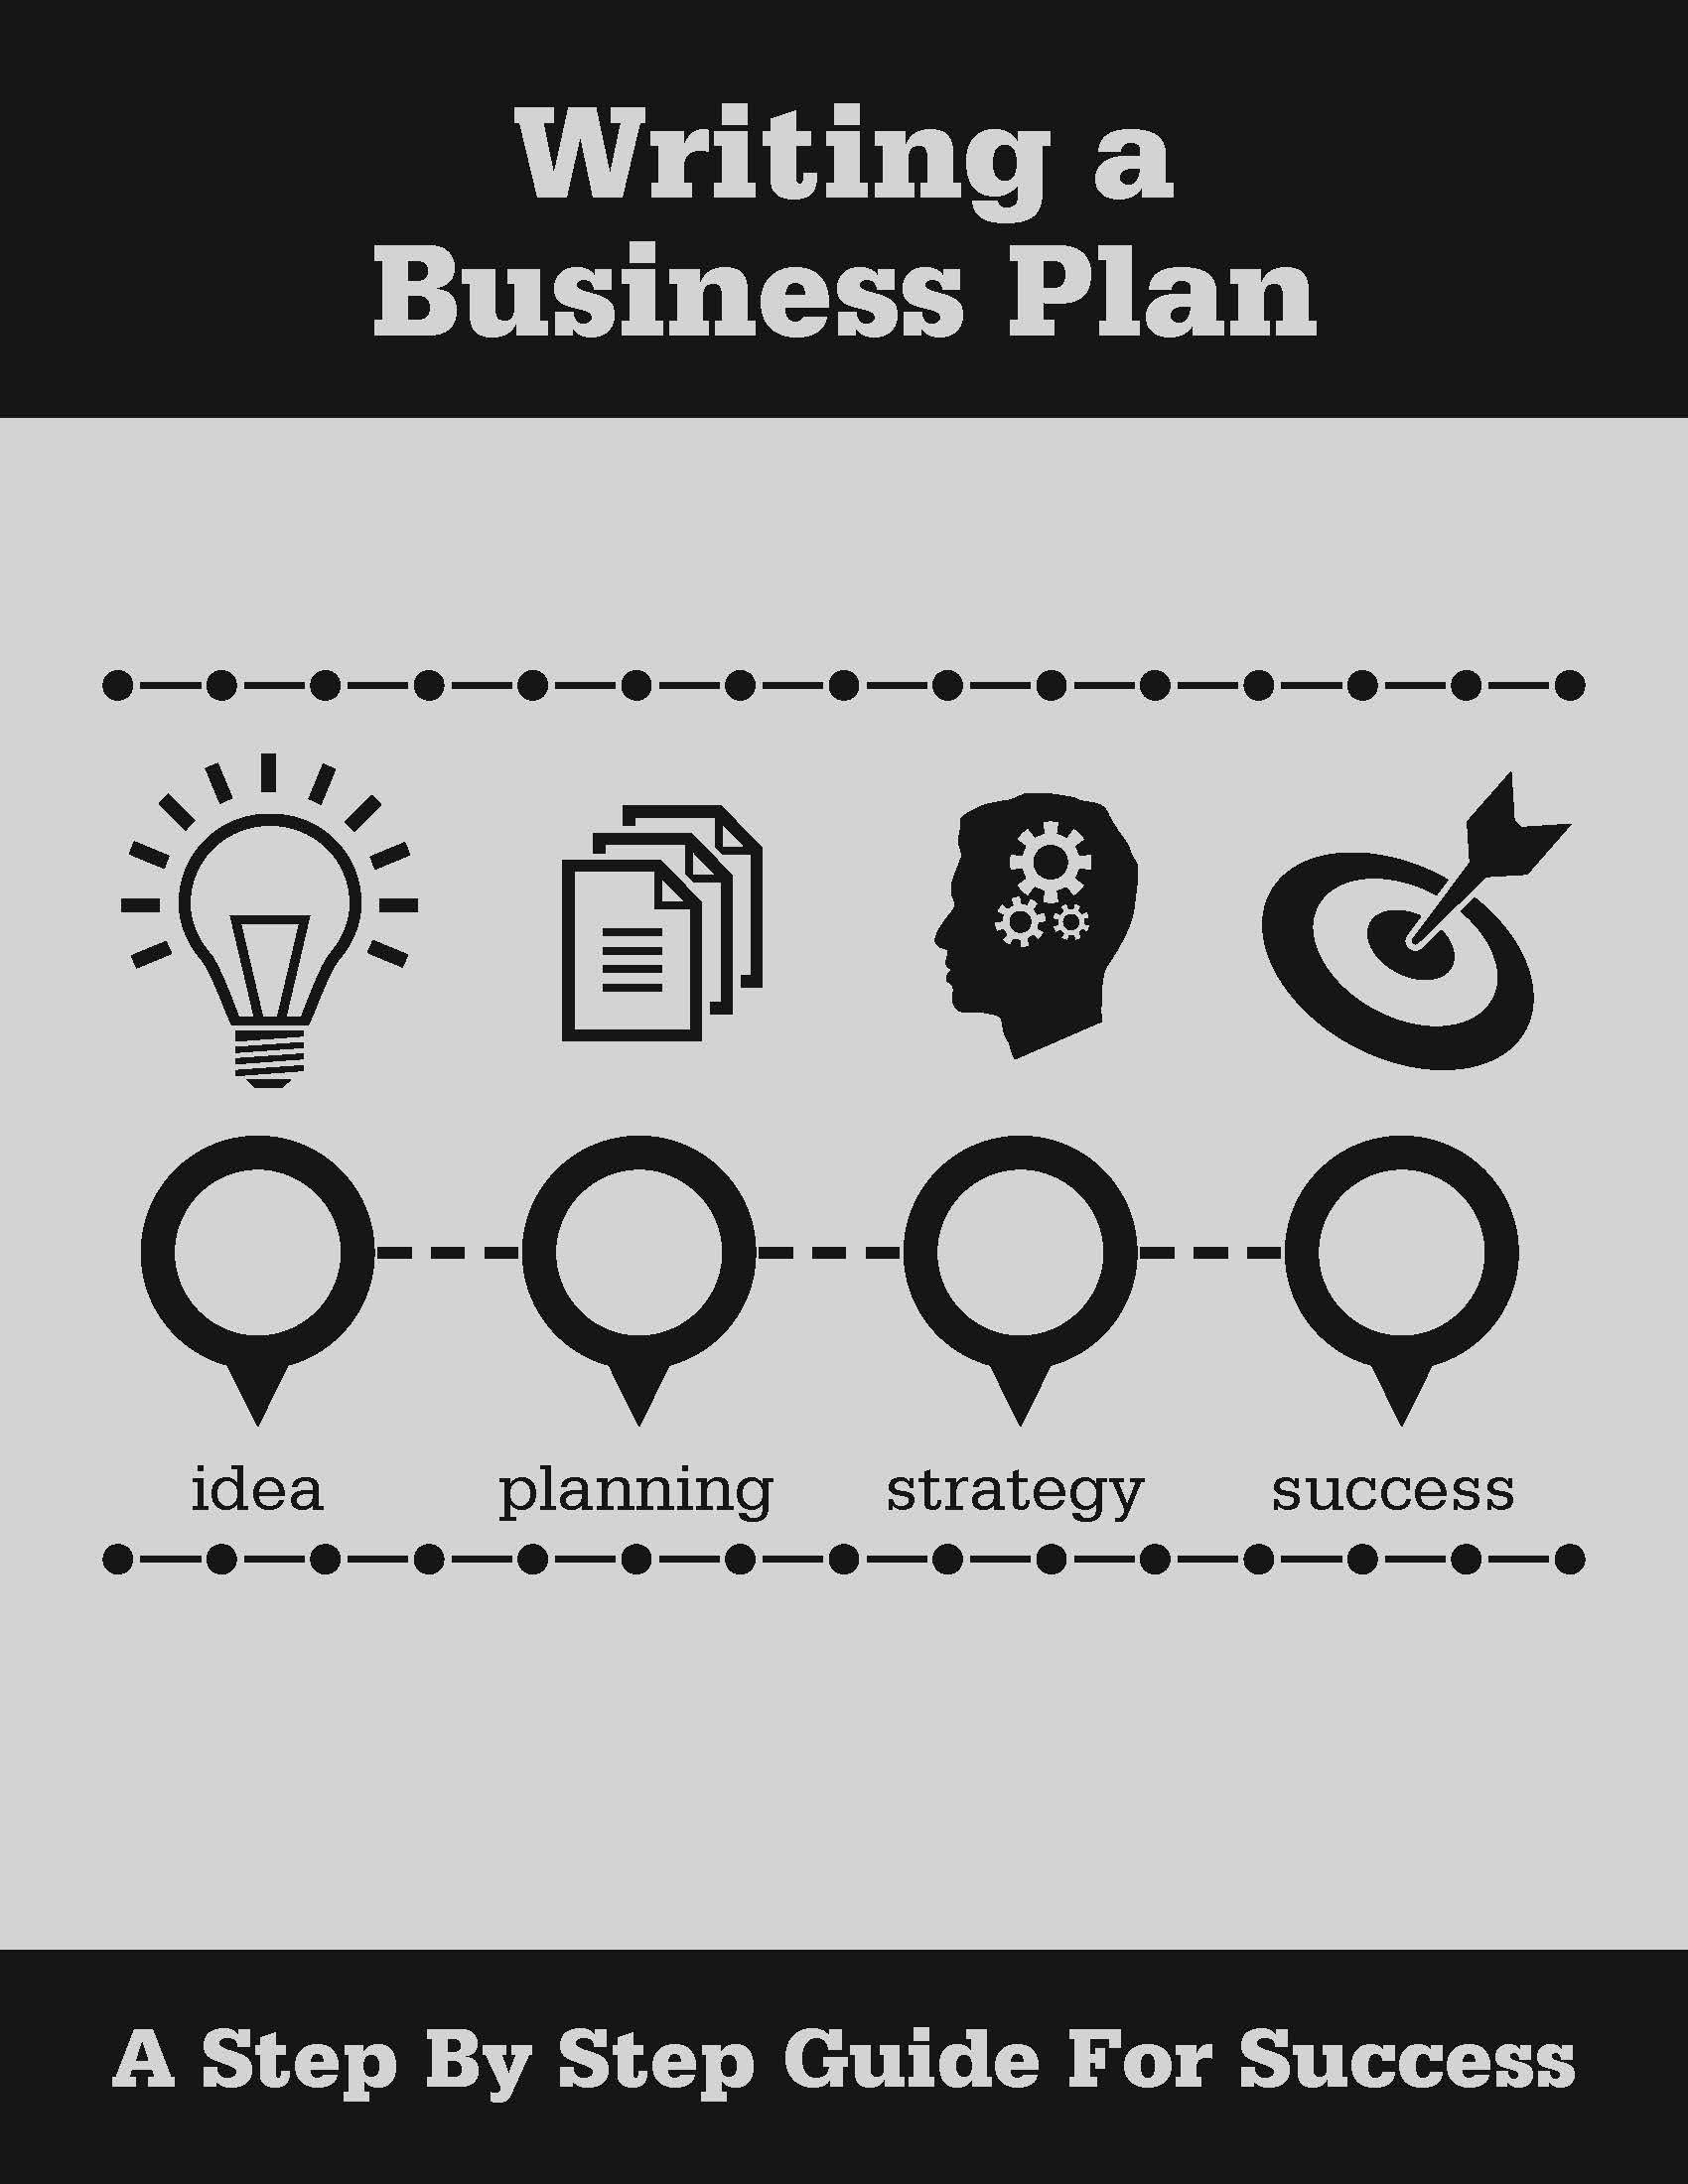 step by step guide to writing a business plan